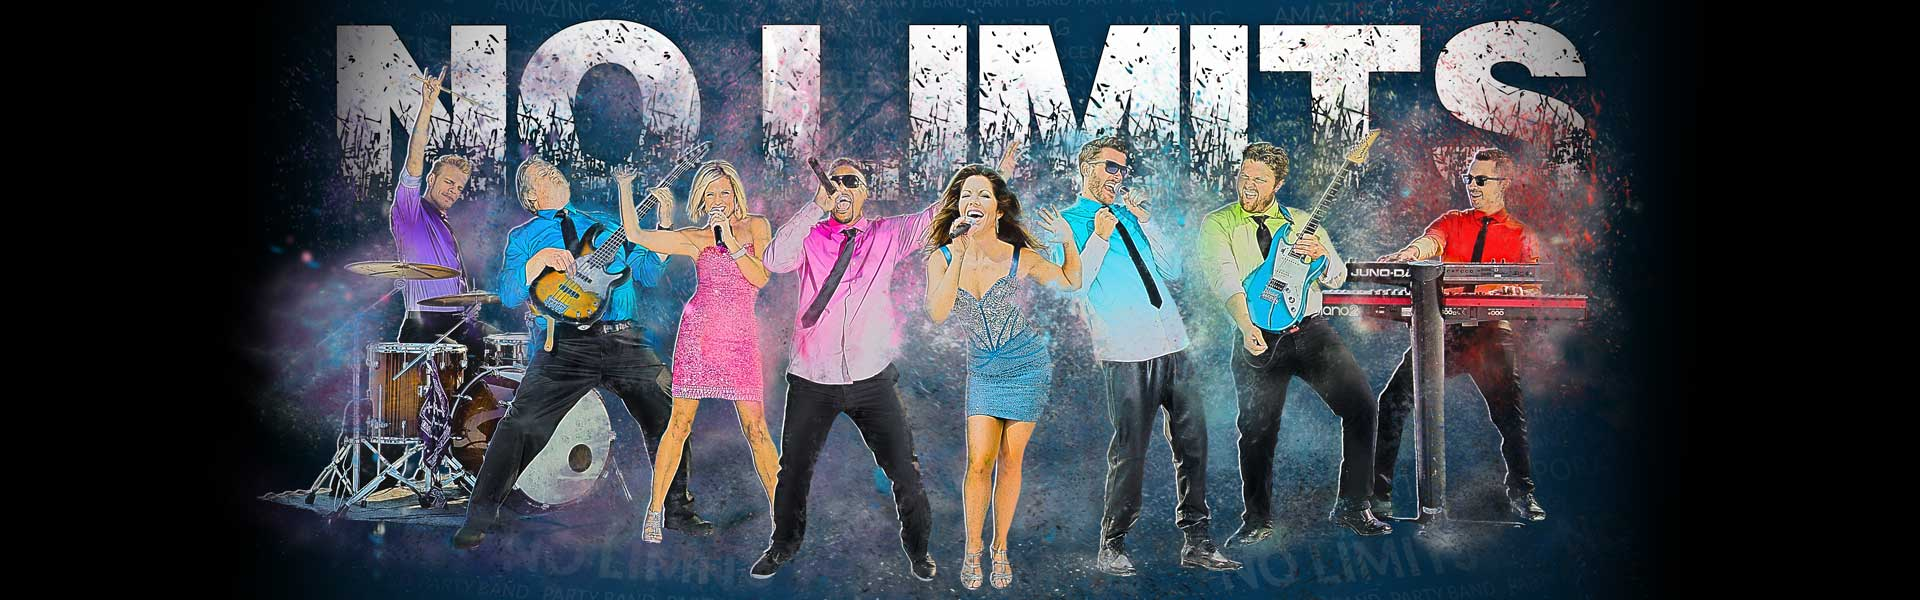 No Limits Dance Band Header Image